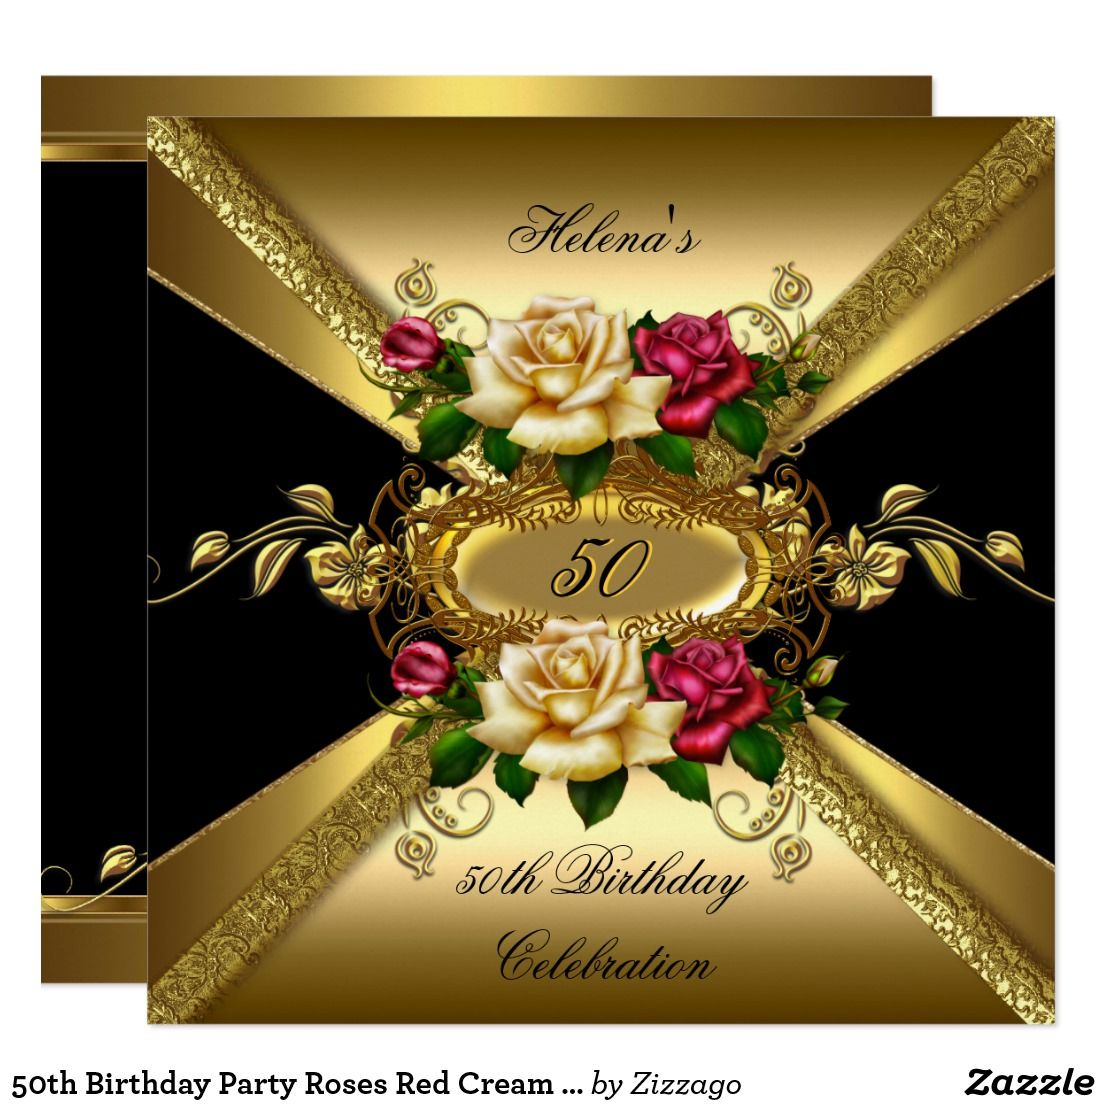 50th Birthday Party Roses Red Cream Gold Card Black Invitation Floral Flowers